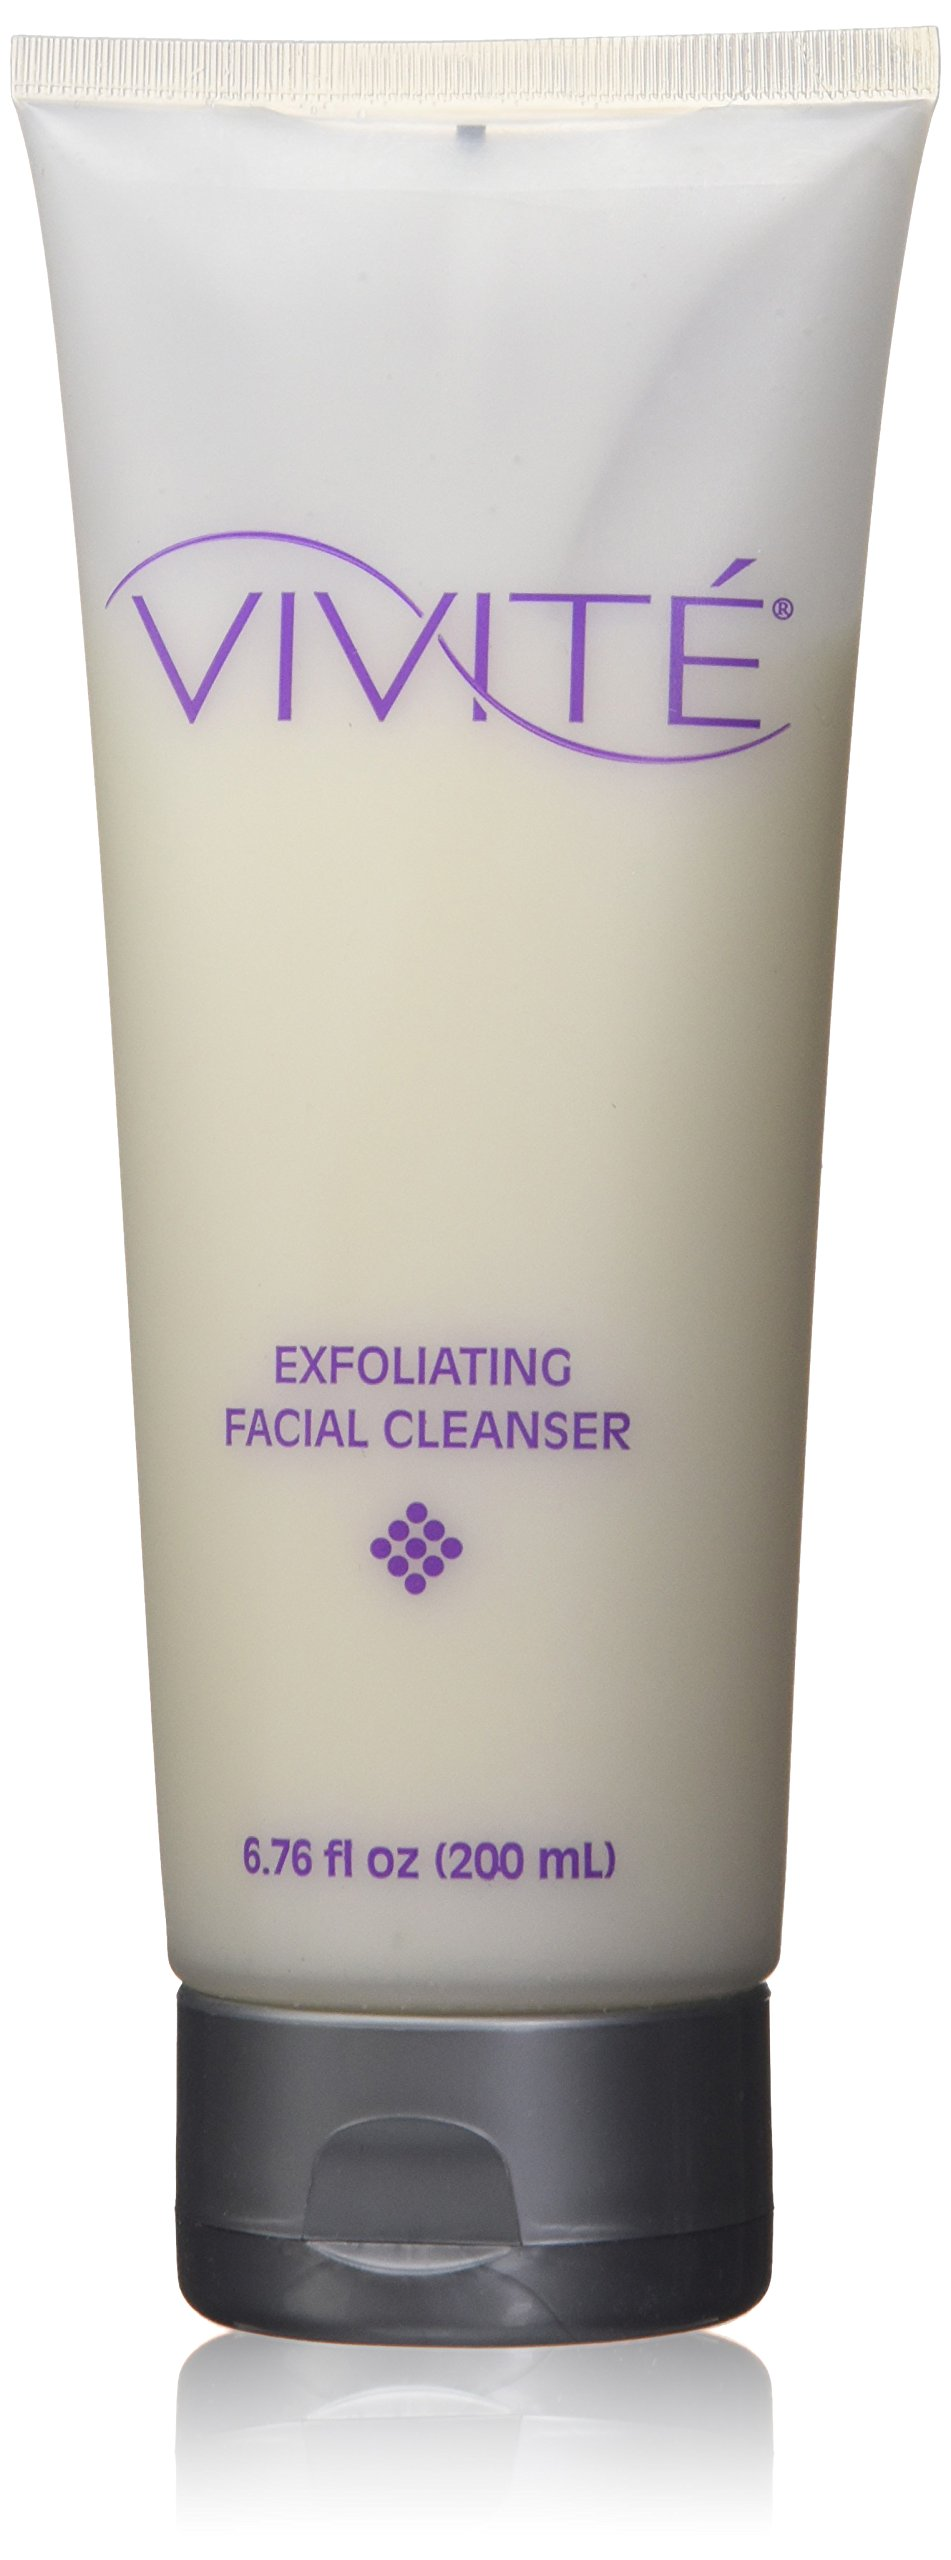 VIVITÉ Exfoliating Facial Cleanser, 6.76-Ounce Tube